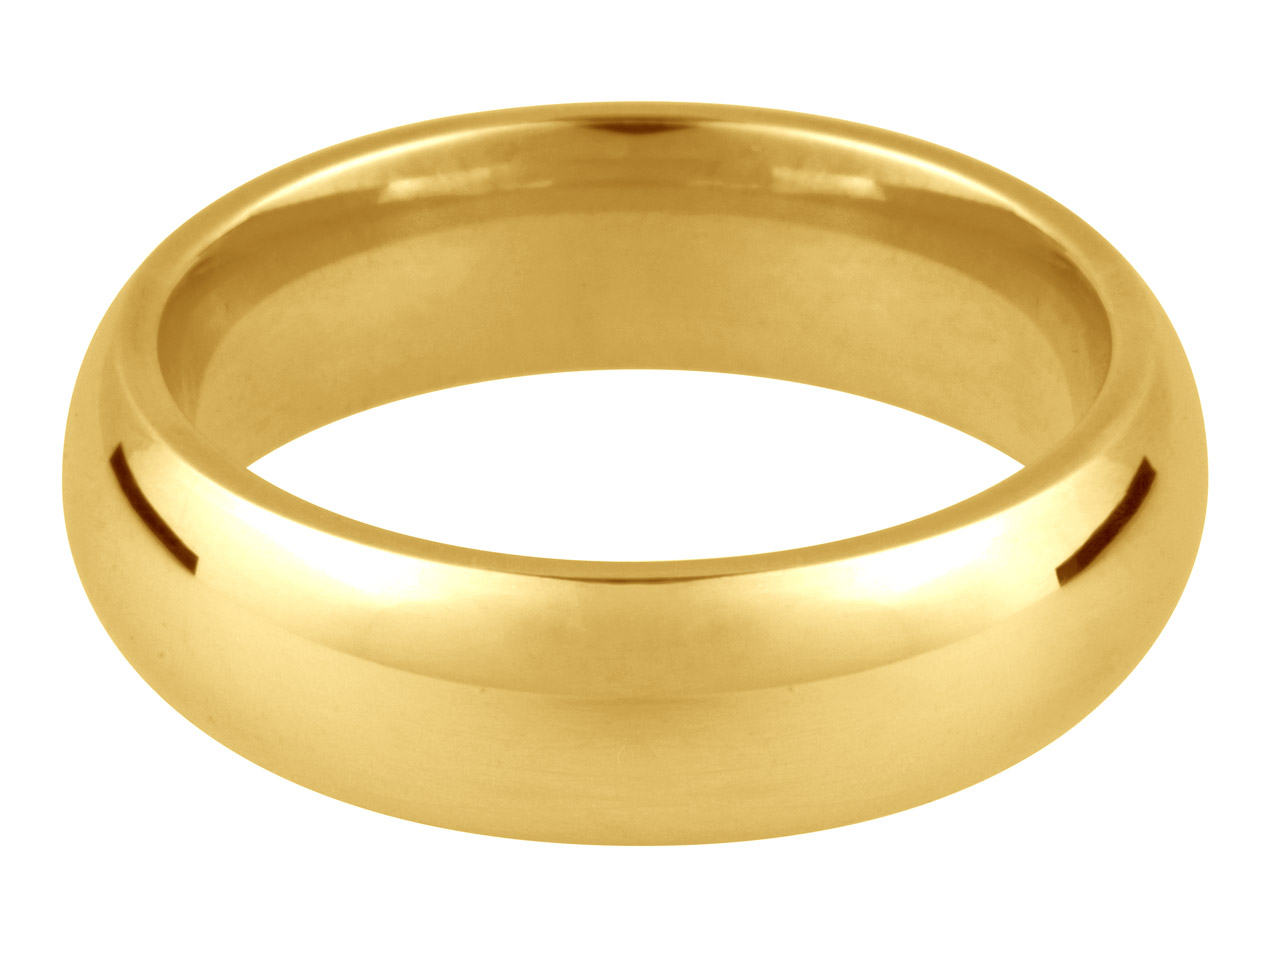 9ct Yellow Court Wedding Ring 4.0mm O 4.3gms Medium Weight Hallmarked   Wall Thickness 1.88mm